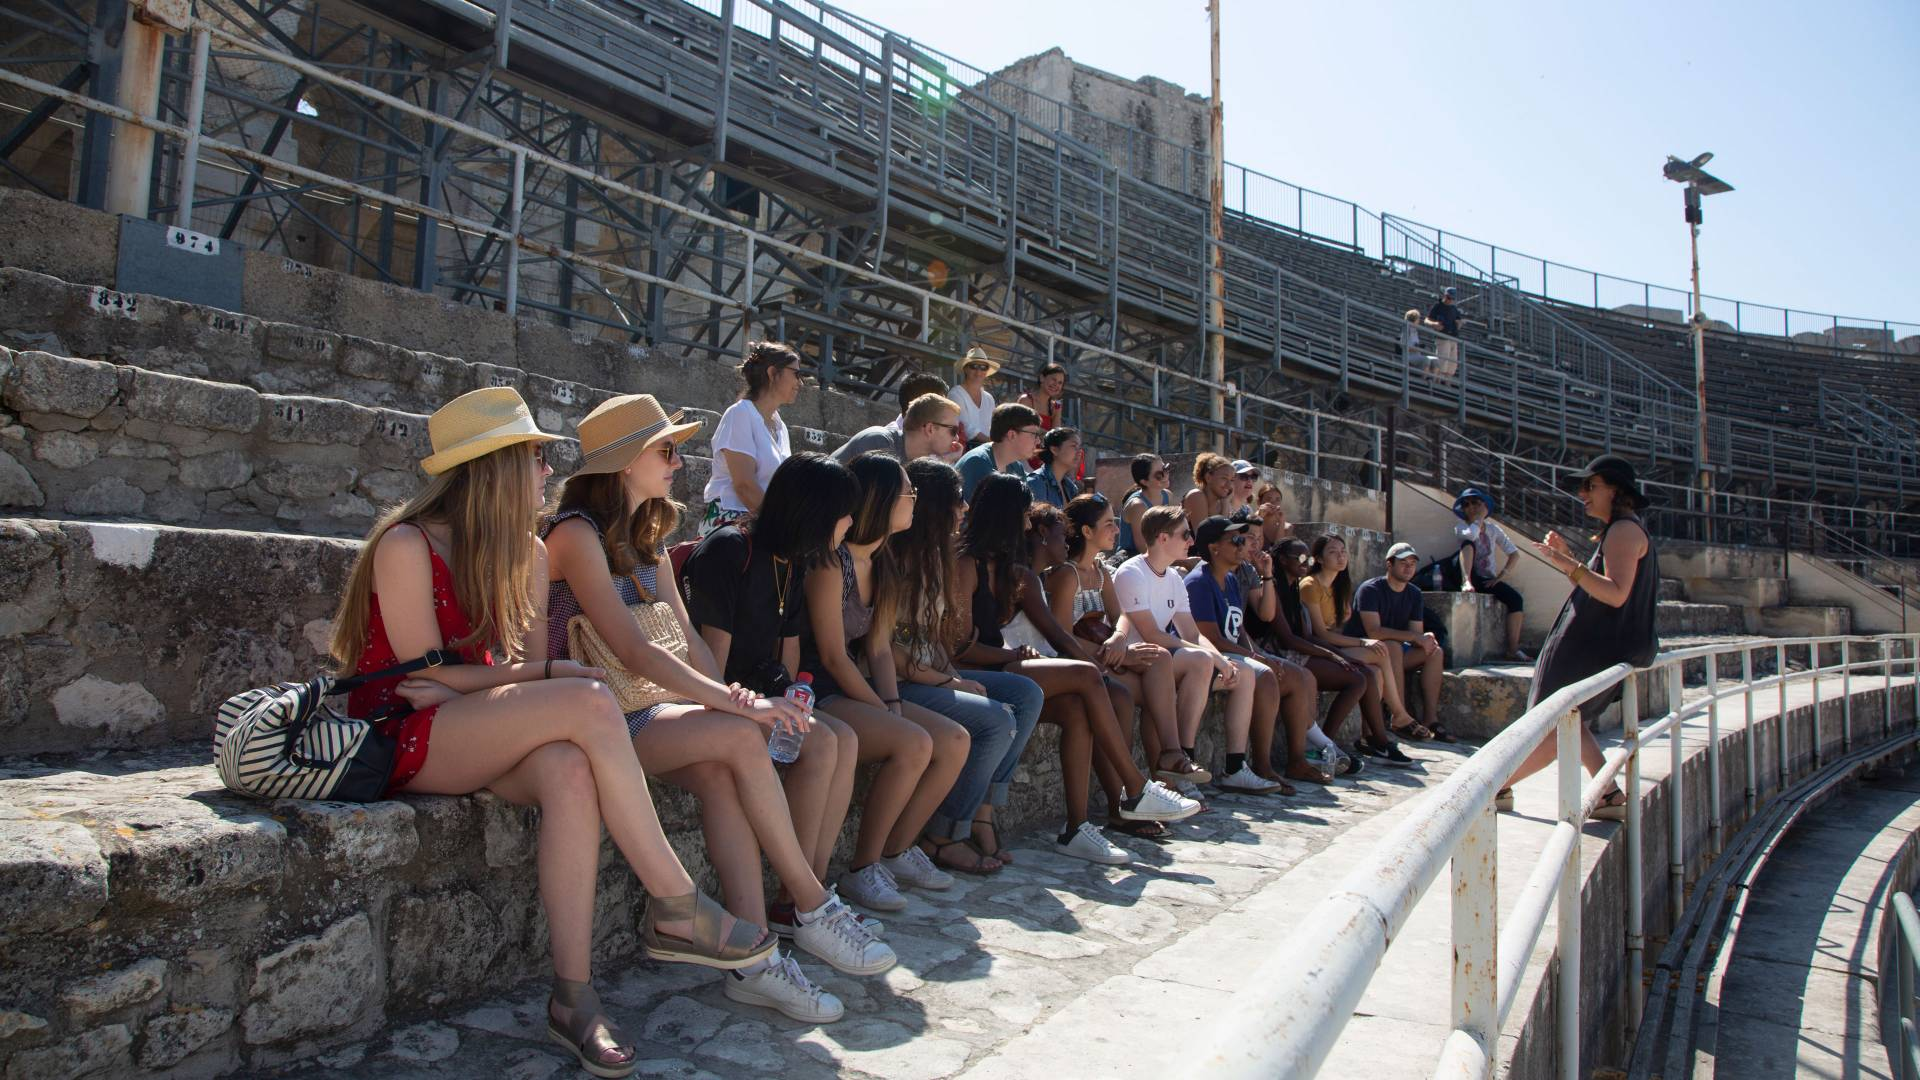 Students sitting on bench at amphitheater in Arles, France